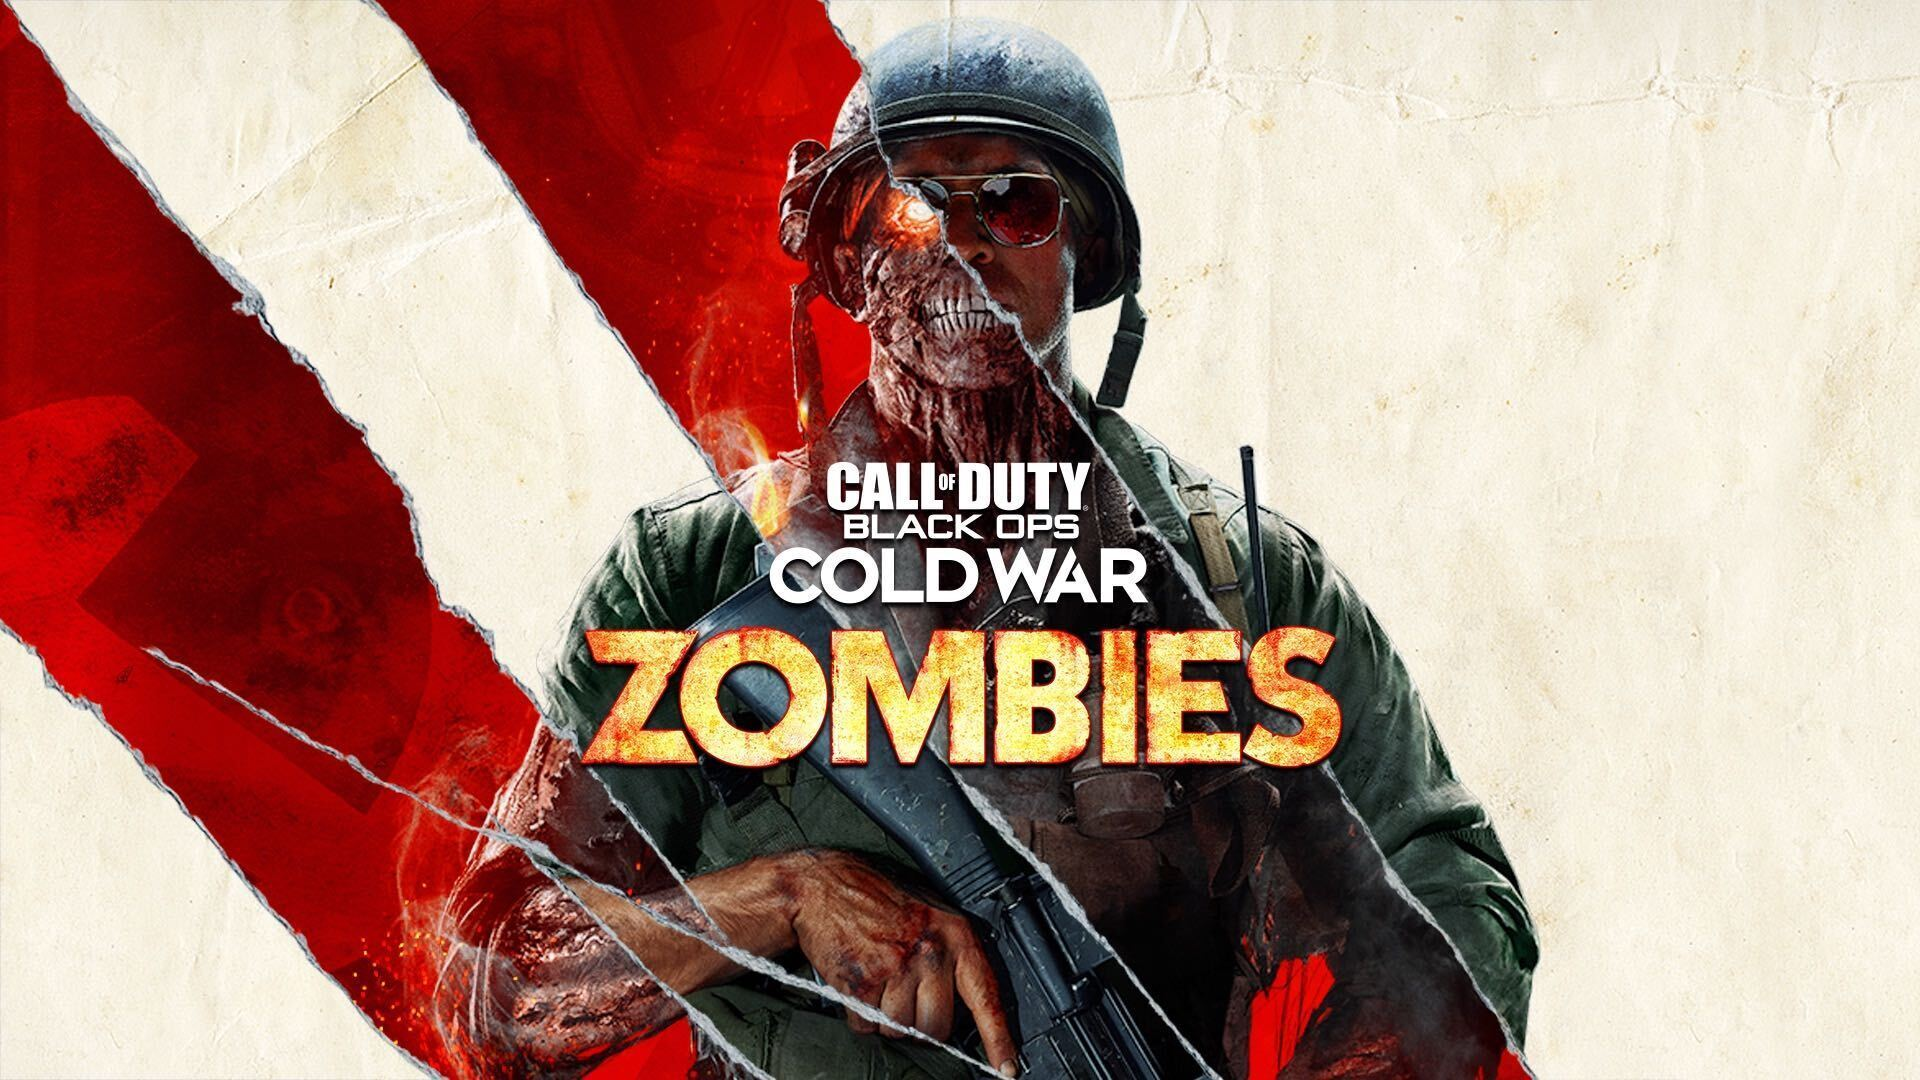 Black Ops Cold War Zombies reveal date confirmed